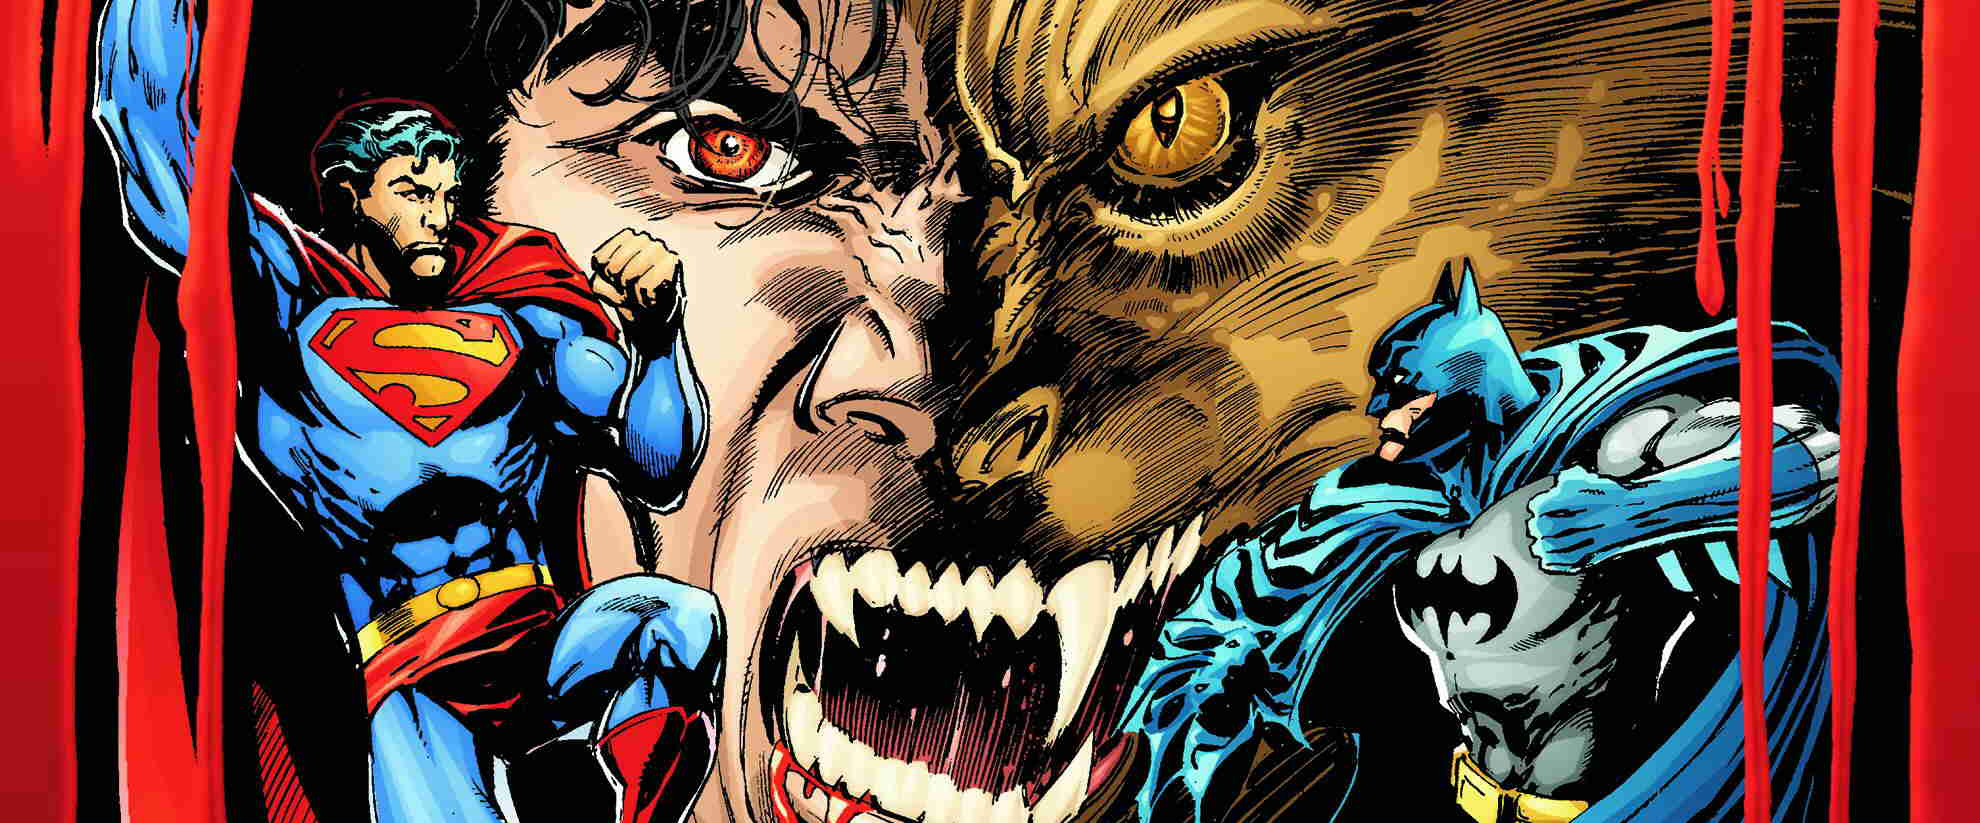 Superman Batman vs. Vampires and Werewolves comic books from DC Comics